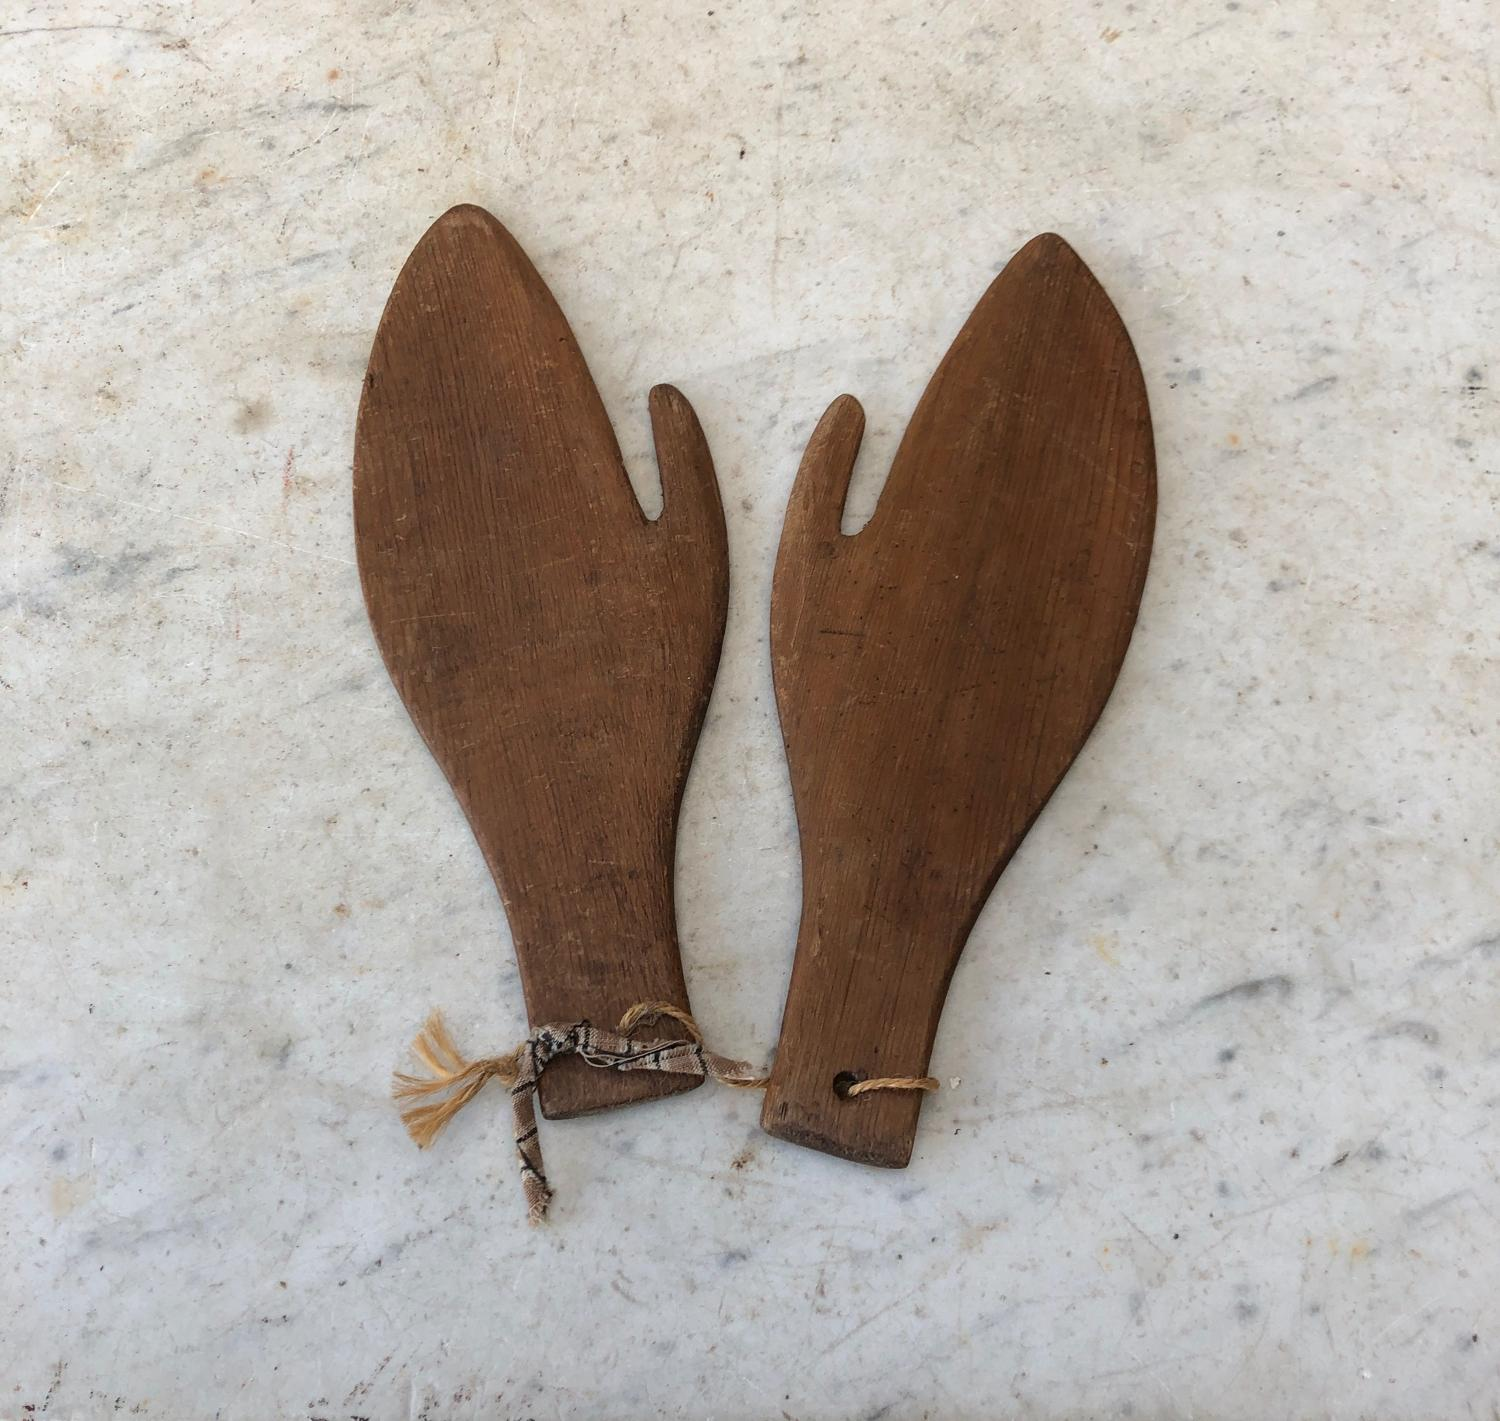 Rare Edwardian Pine Mitten Driers, Shapers or Stretchers